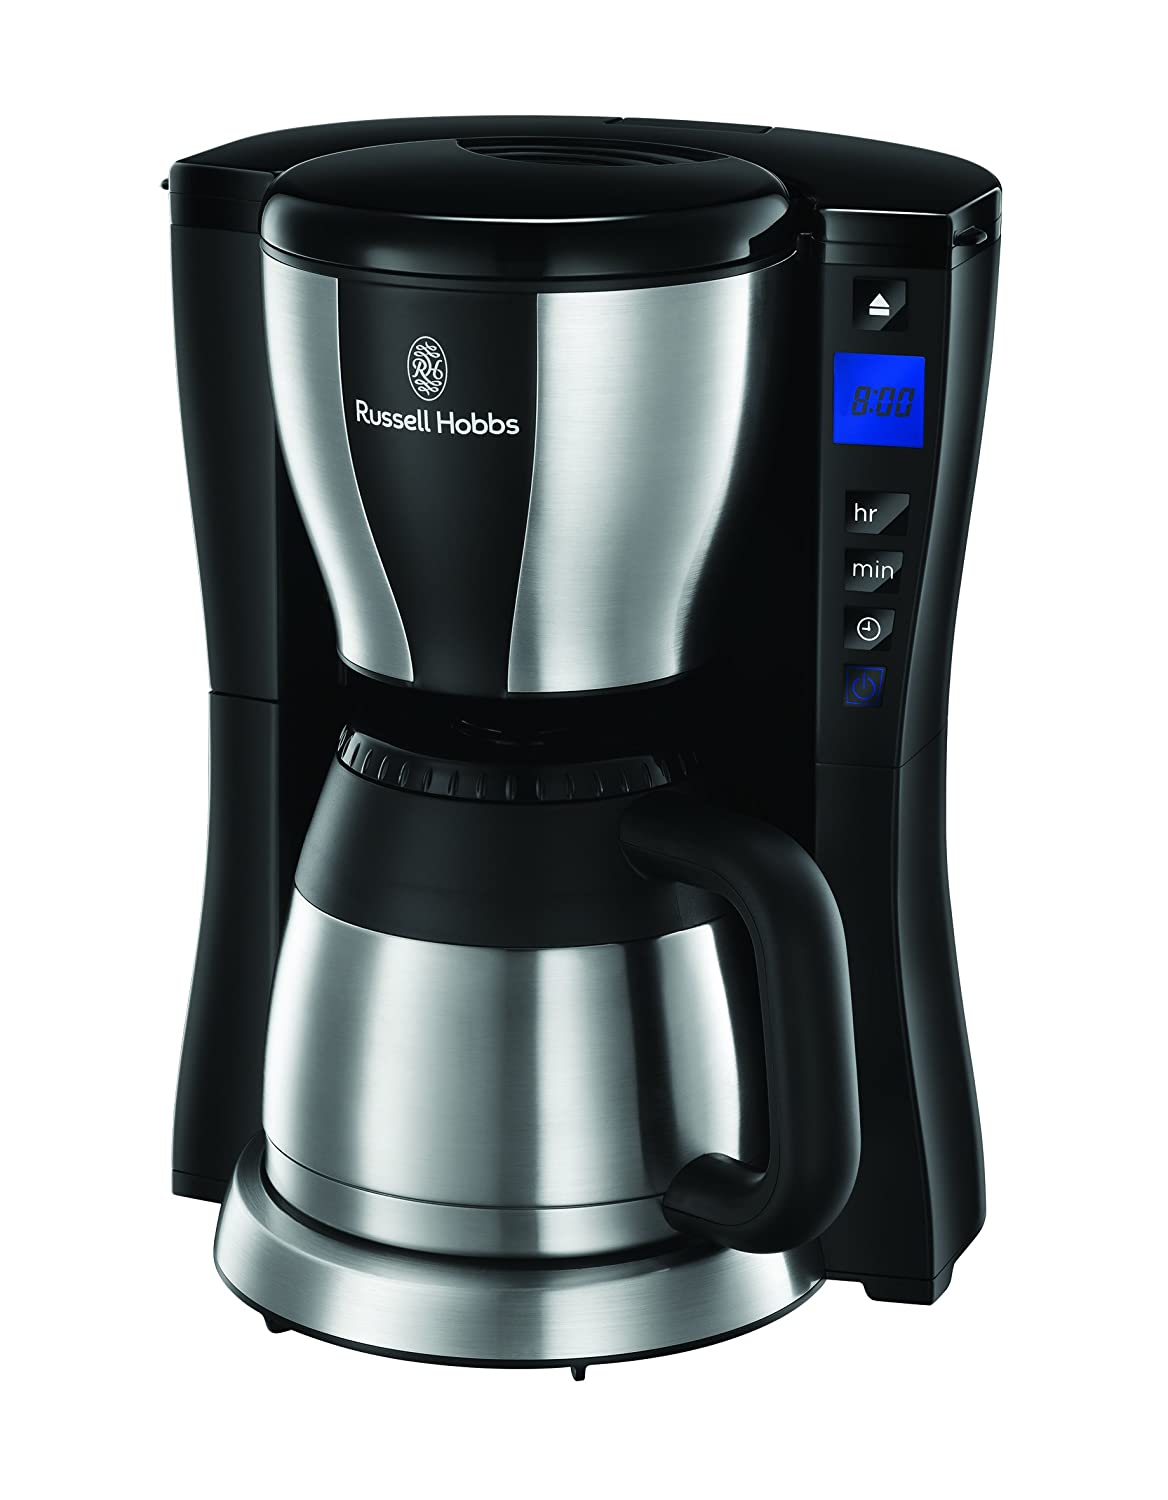 Russell Hobbs Fast Brew Cafetera, Temporizador Programable, 1200 W, 1 Liter, Negro, Acero inoxidable